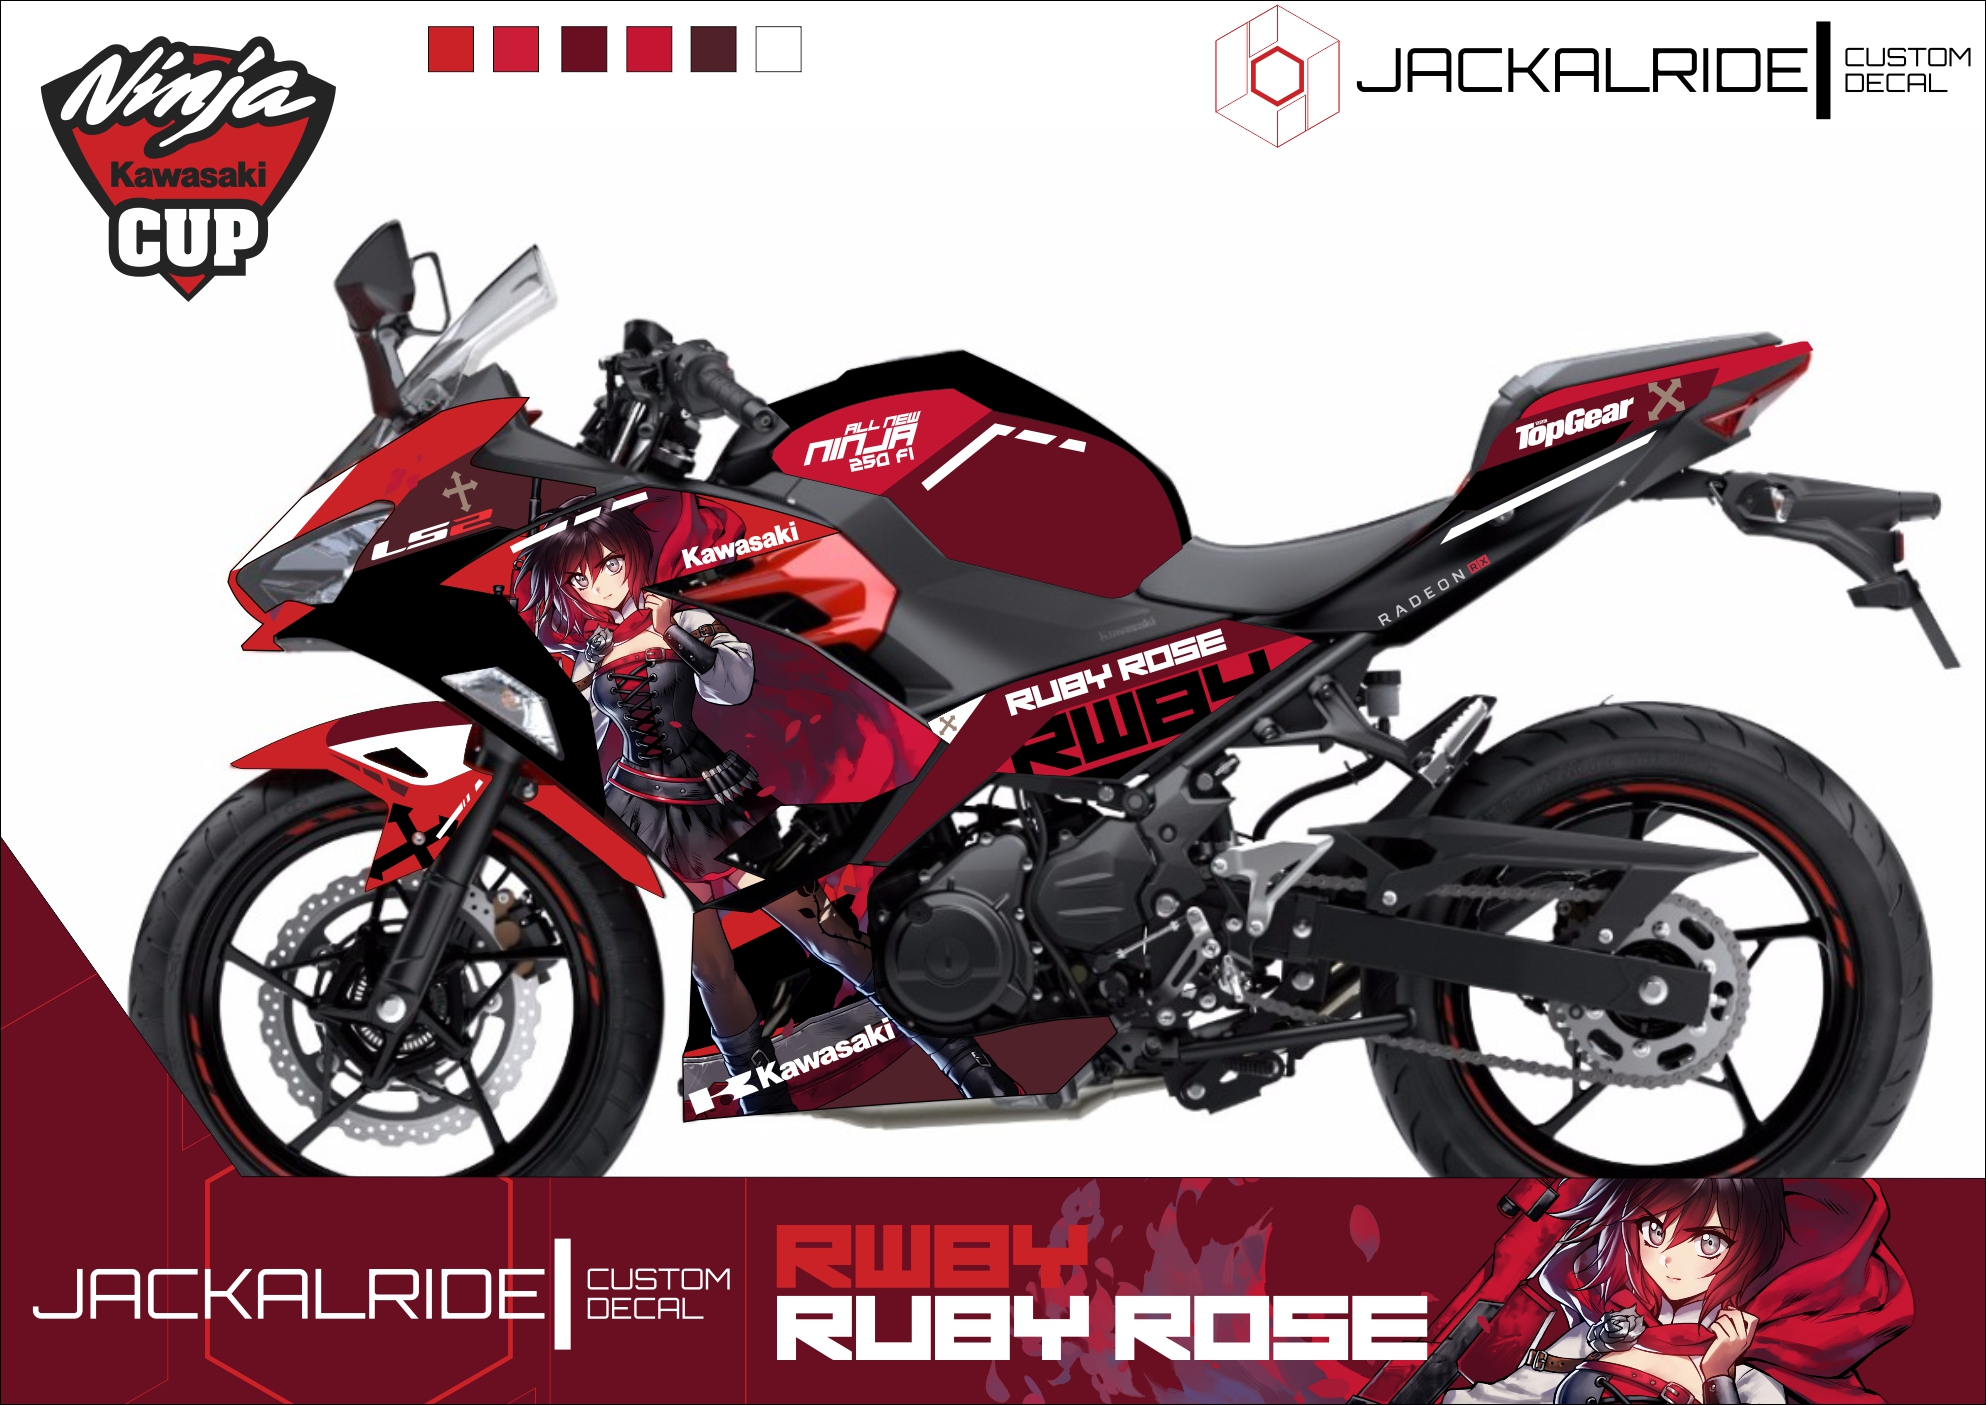 Custom decal for all new ninja 250 fi ruby rose from rwby